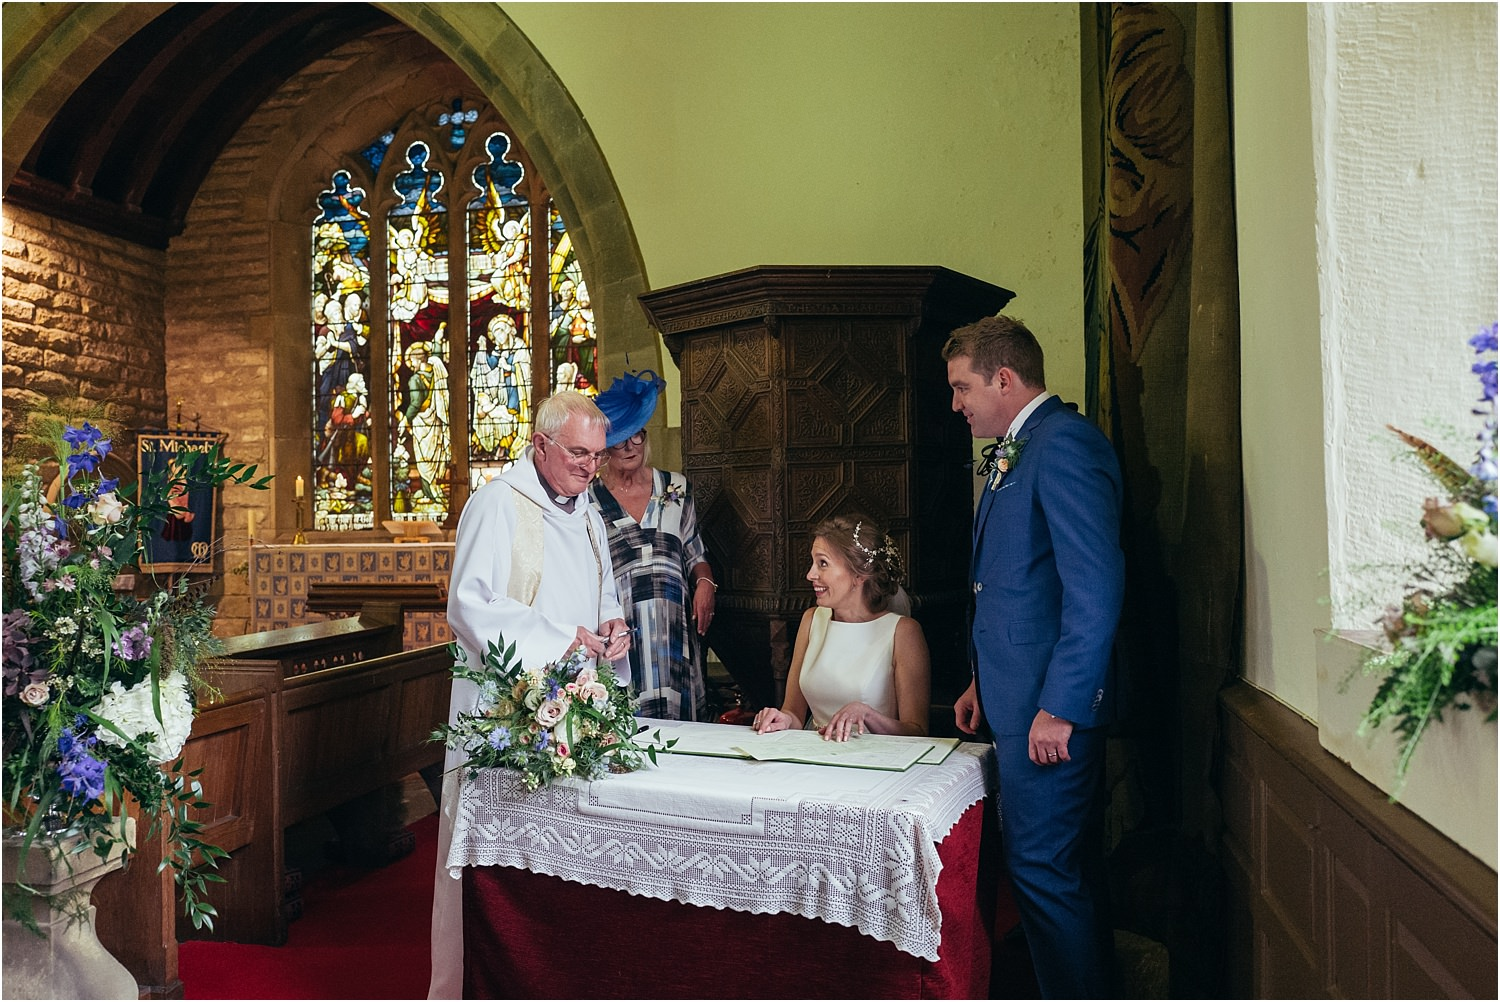 Bride, groom, vicar and bride's mum at the register signing in Lancashire church